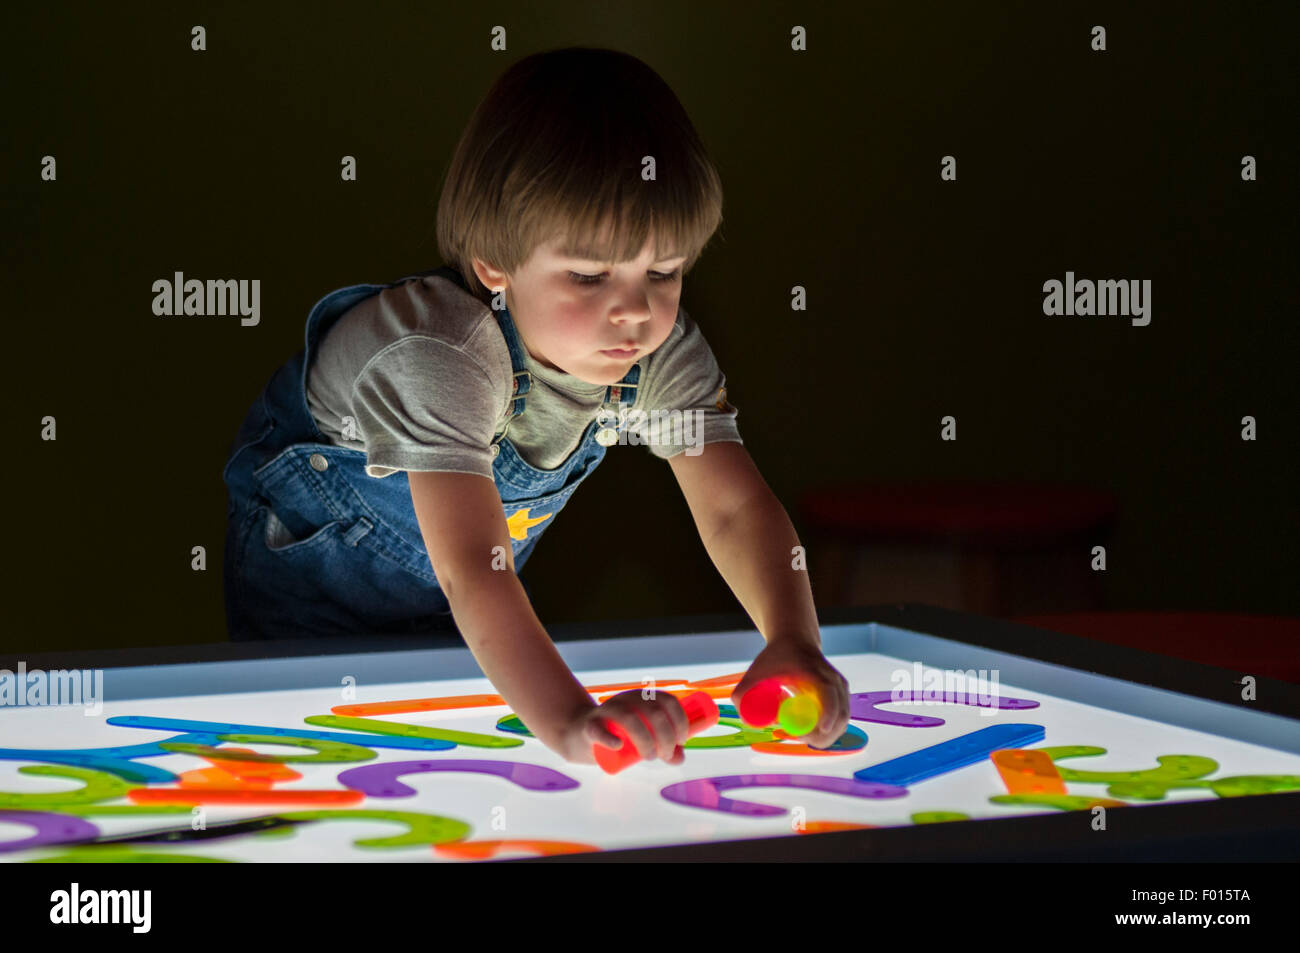 Four Year Old Boy Playing with Colored Objects on Light Box at the Kentucky Science Center in Louisville Kentucky - Stock Image